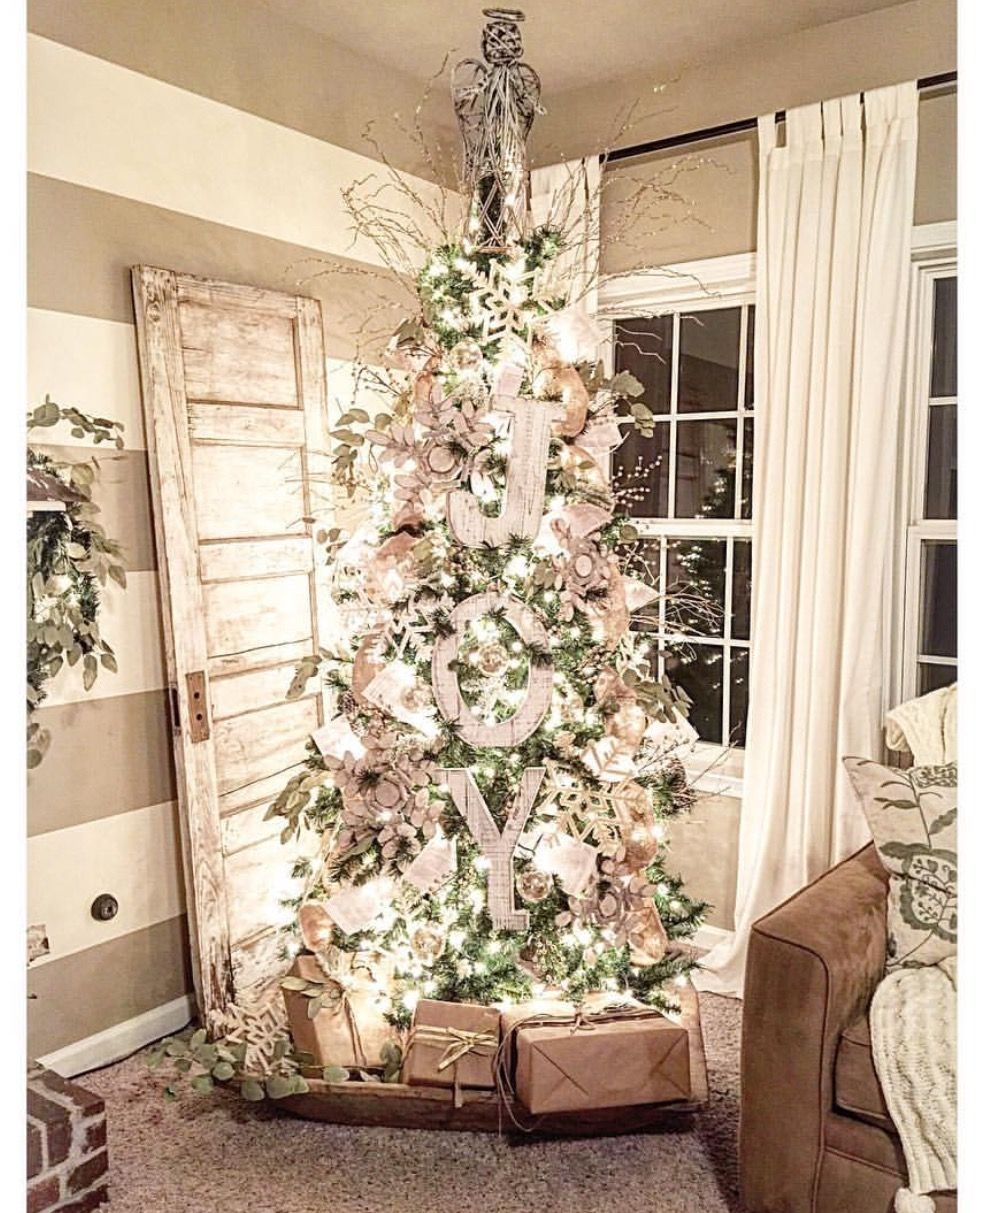 Elegant farmhouse Christmas tree in neutral colors